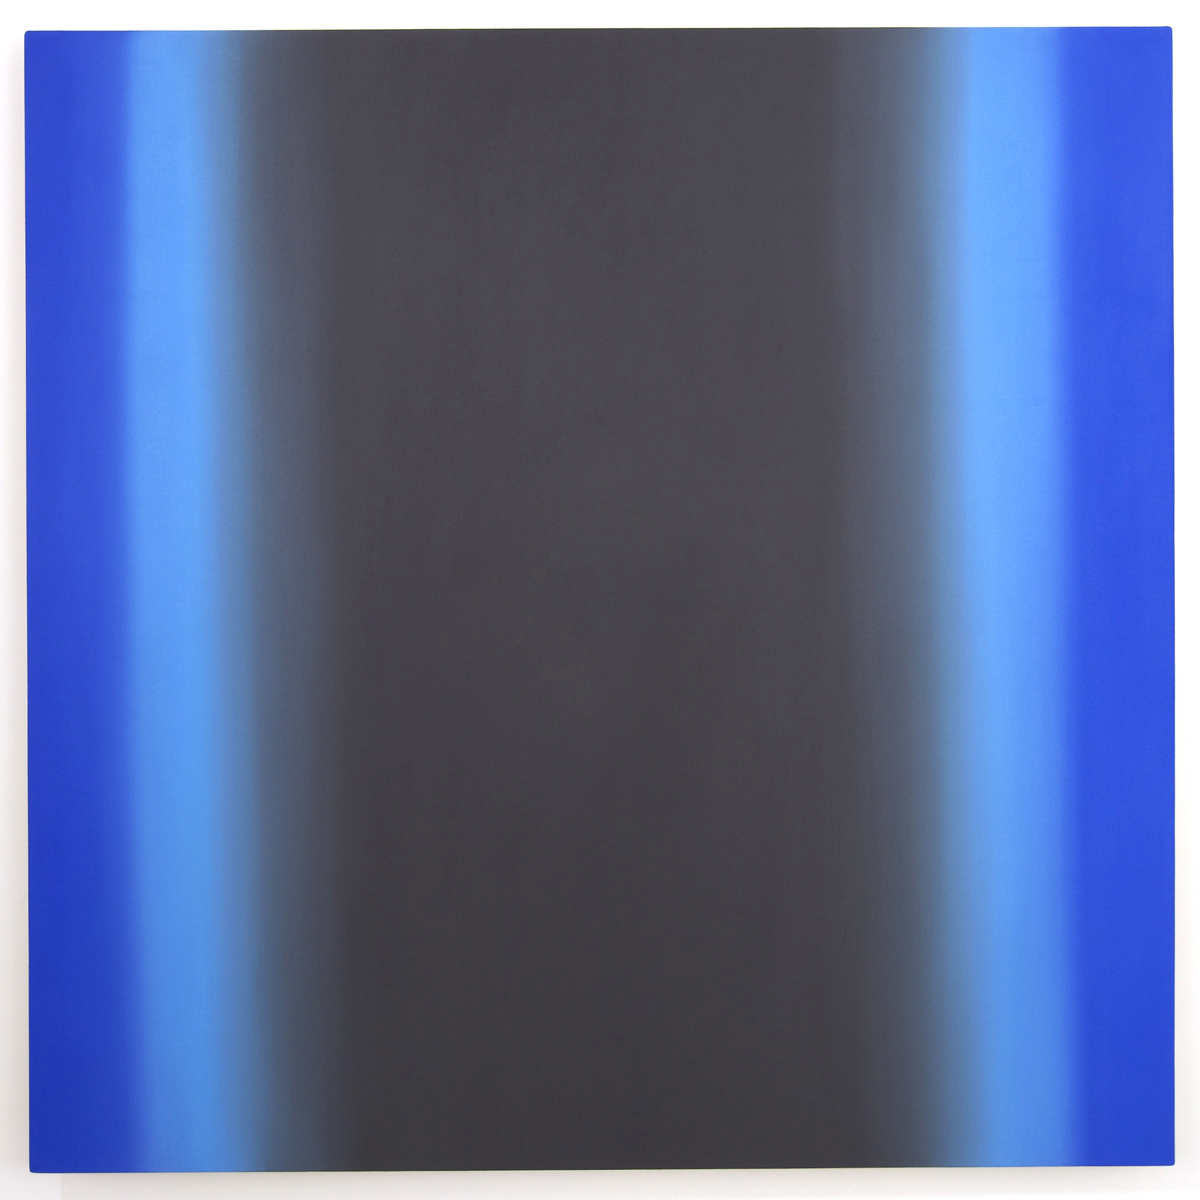 Blue Orange 15-S6060 (Gray Blue Light), Interplay Series, 2013, oil on canvas on custom beveled stretcher, 60 x 60 x 3 inches (153 x 153 x 7 cm.)